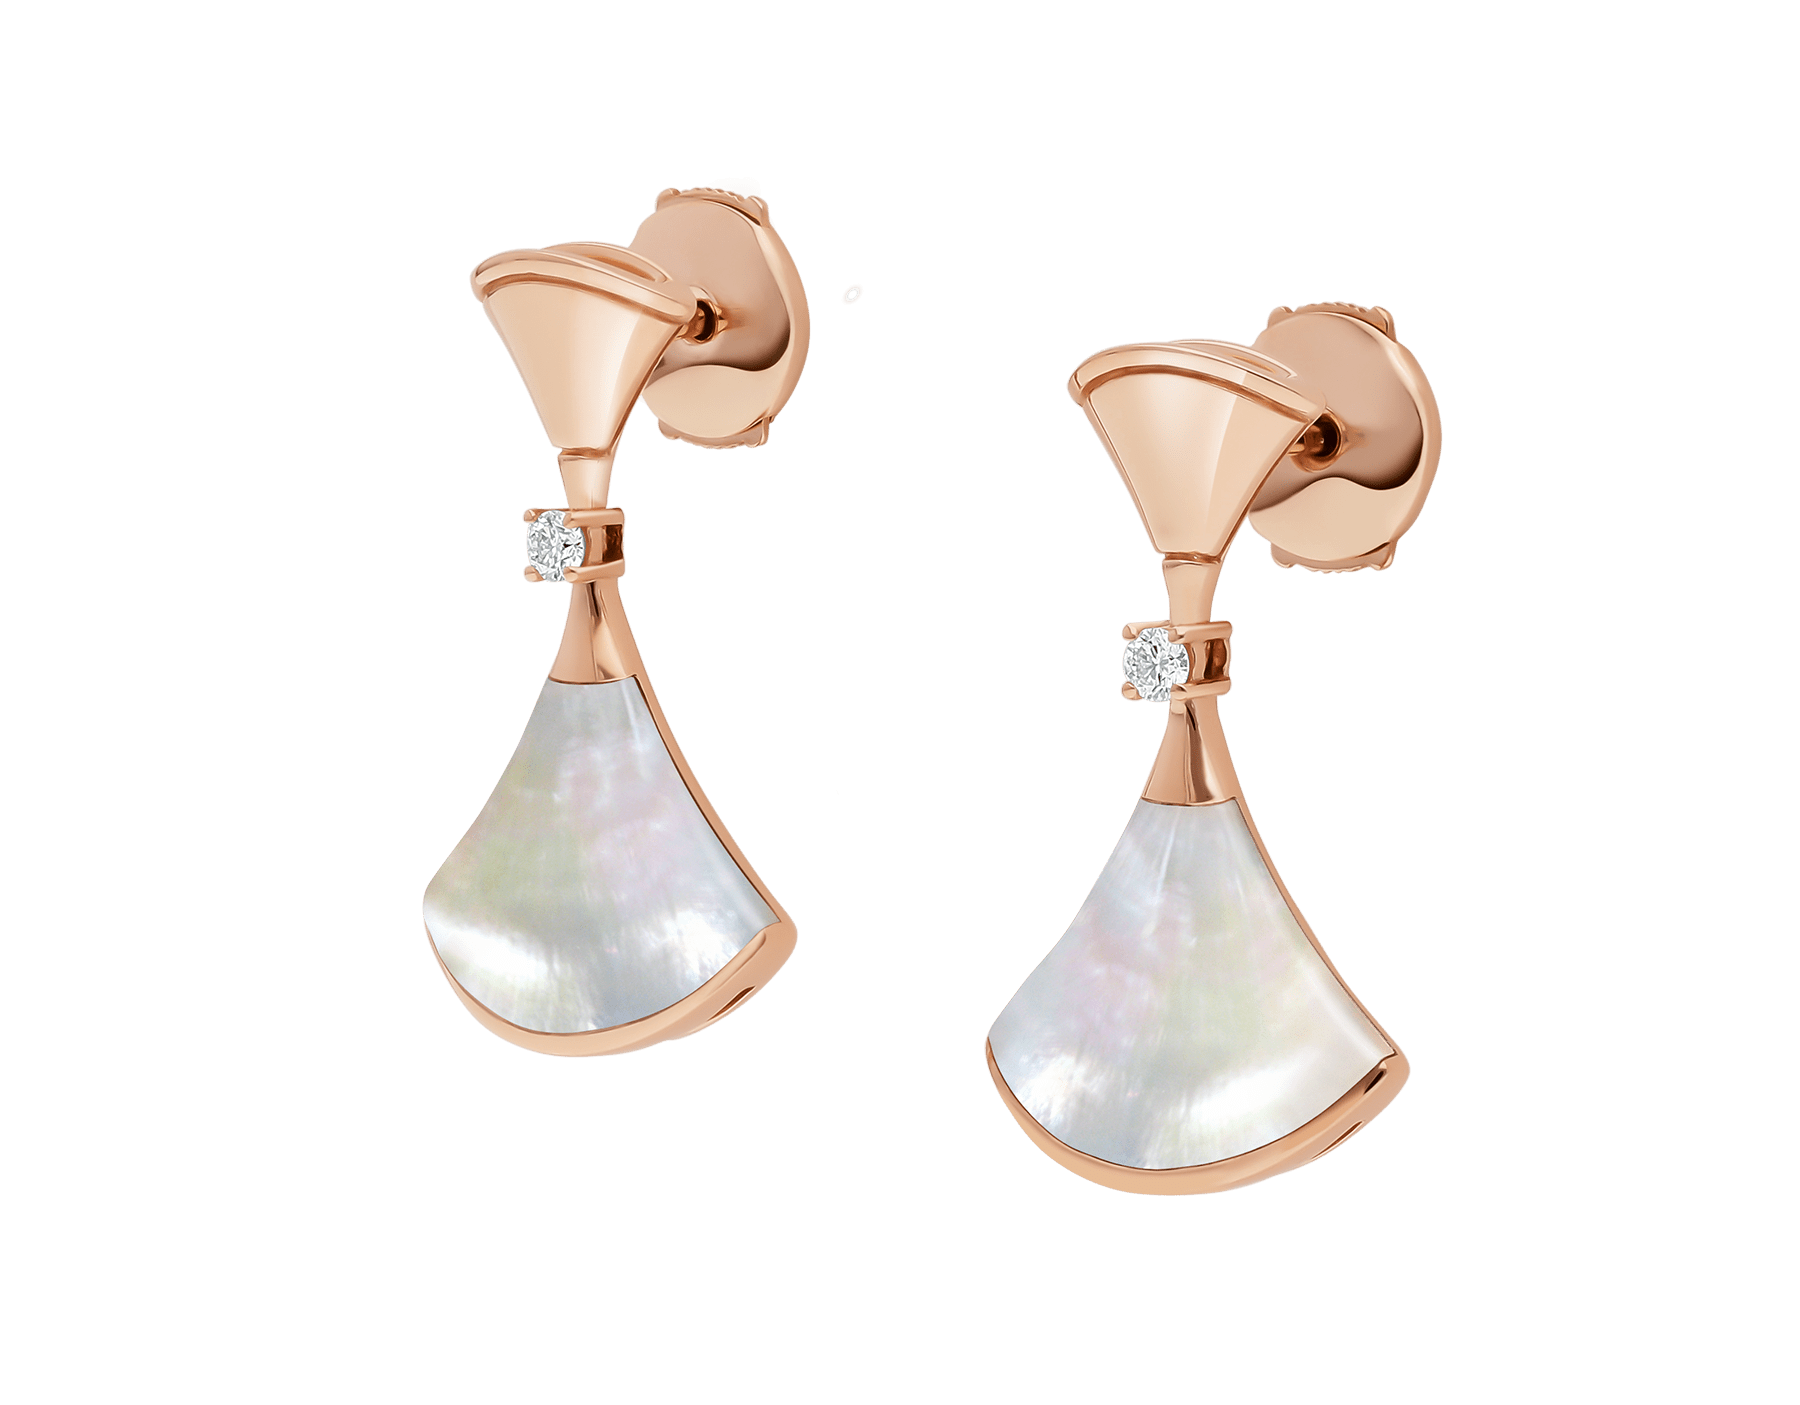 DIVAS' DREAM earrings in 18 kt rose gold set with mother-of-pearl and diamonds. 350740 image 2